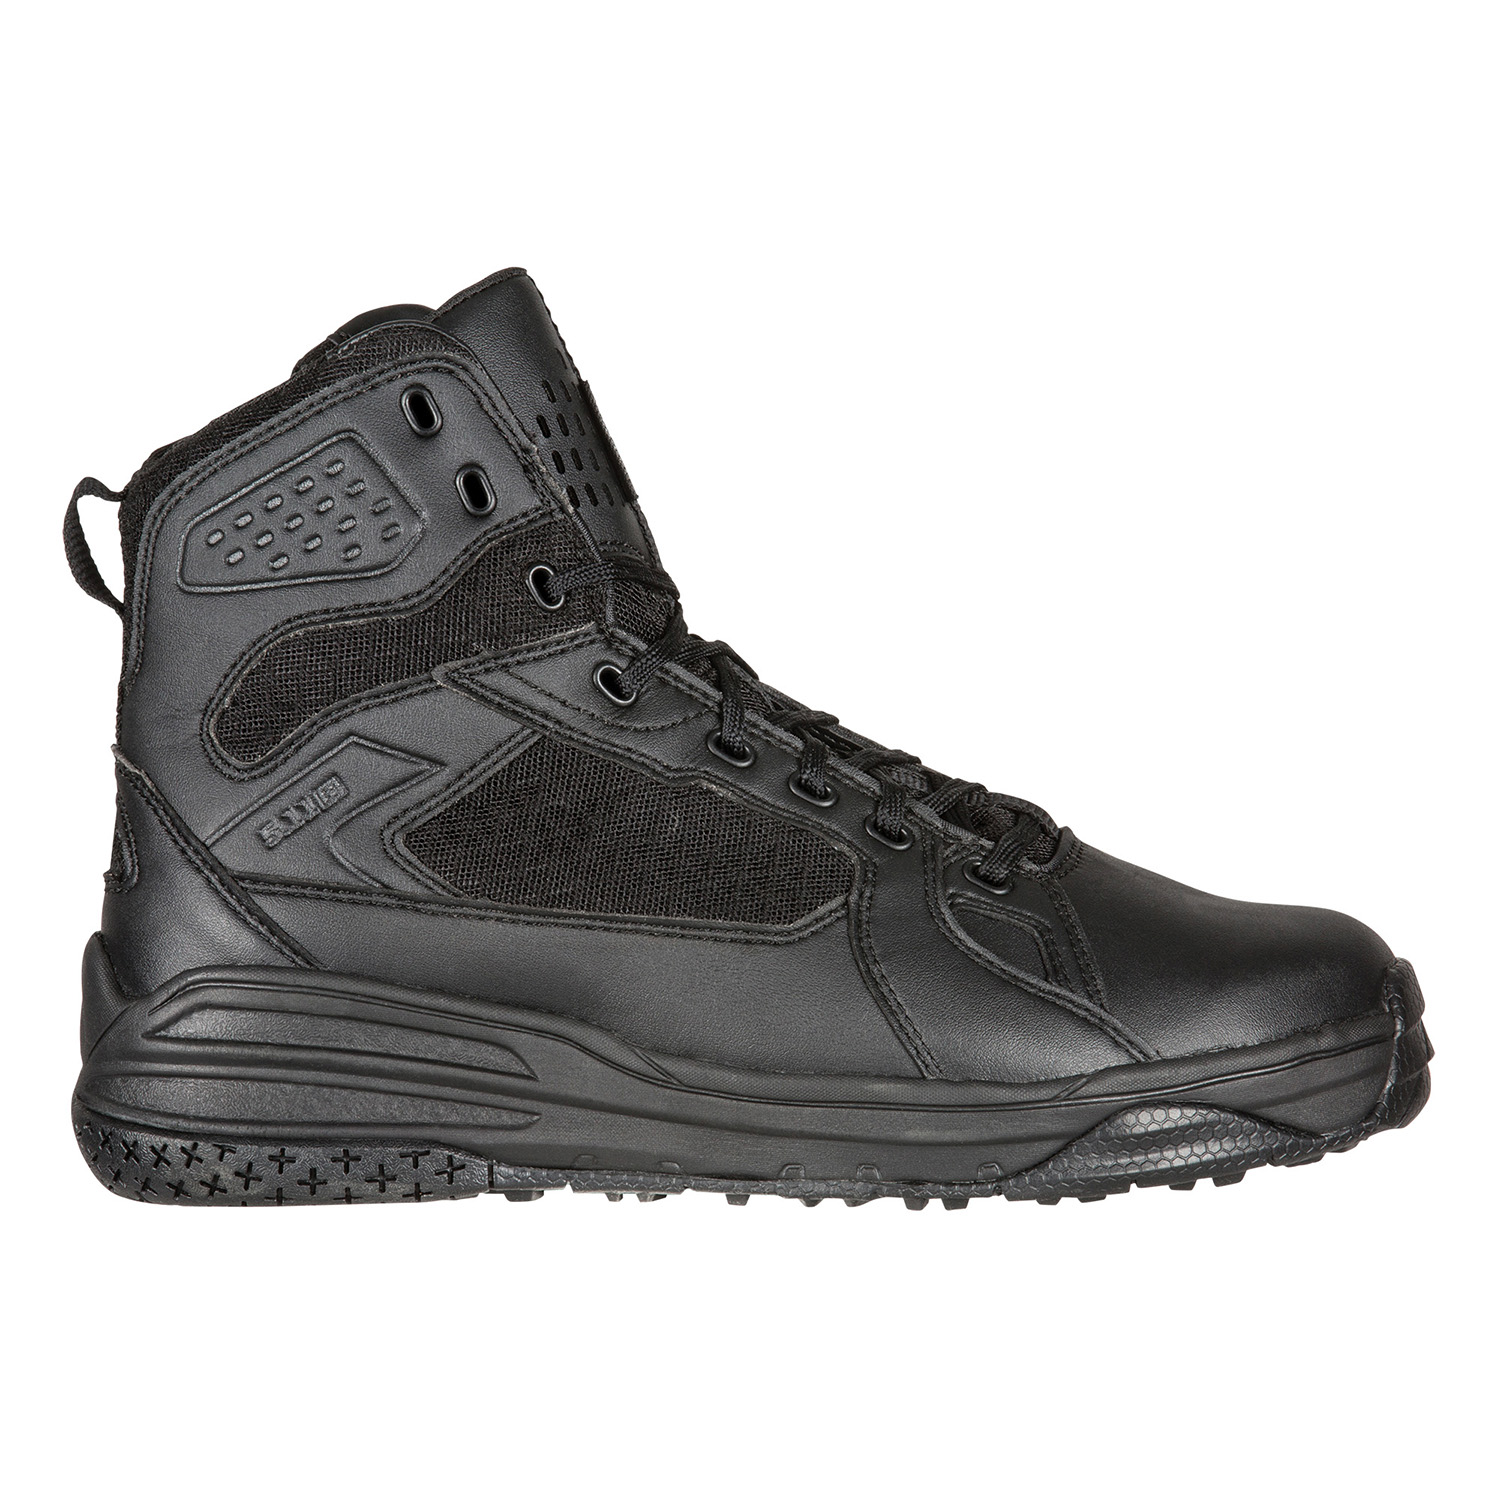 Bottes 5.11 Tactical Halcyon Wp Boot from Nightgear UK